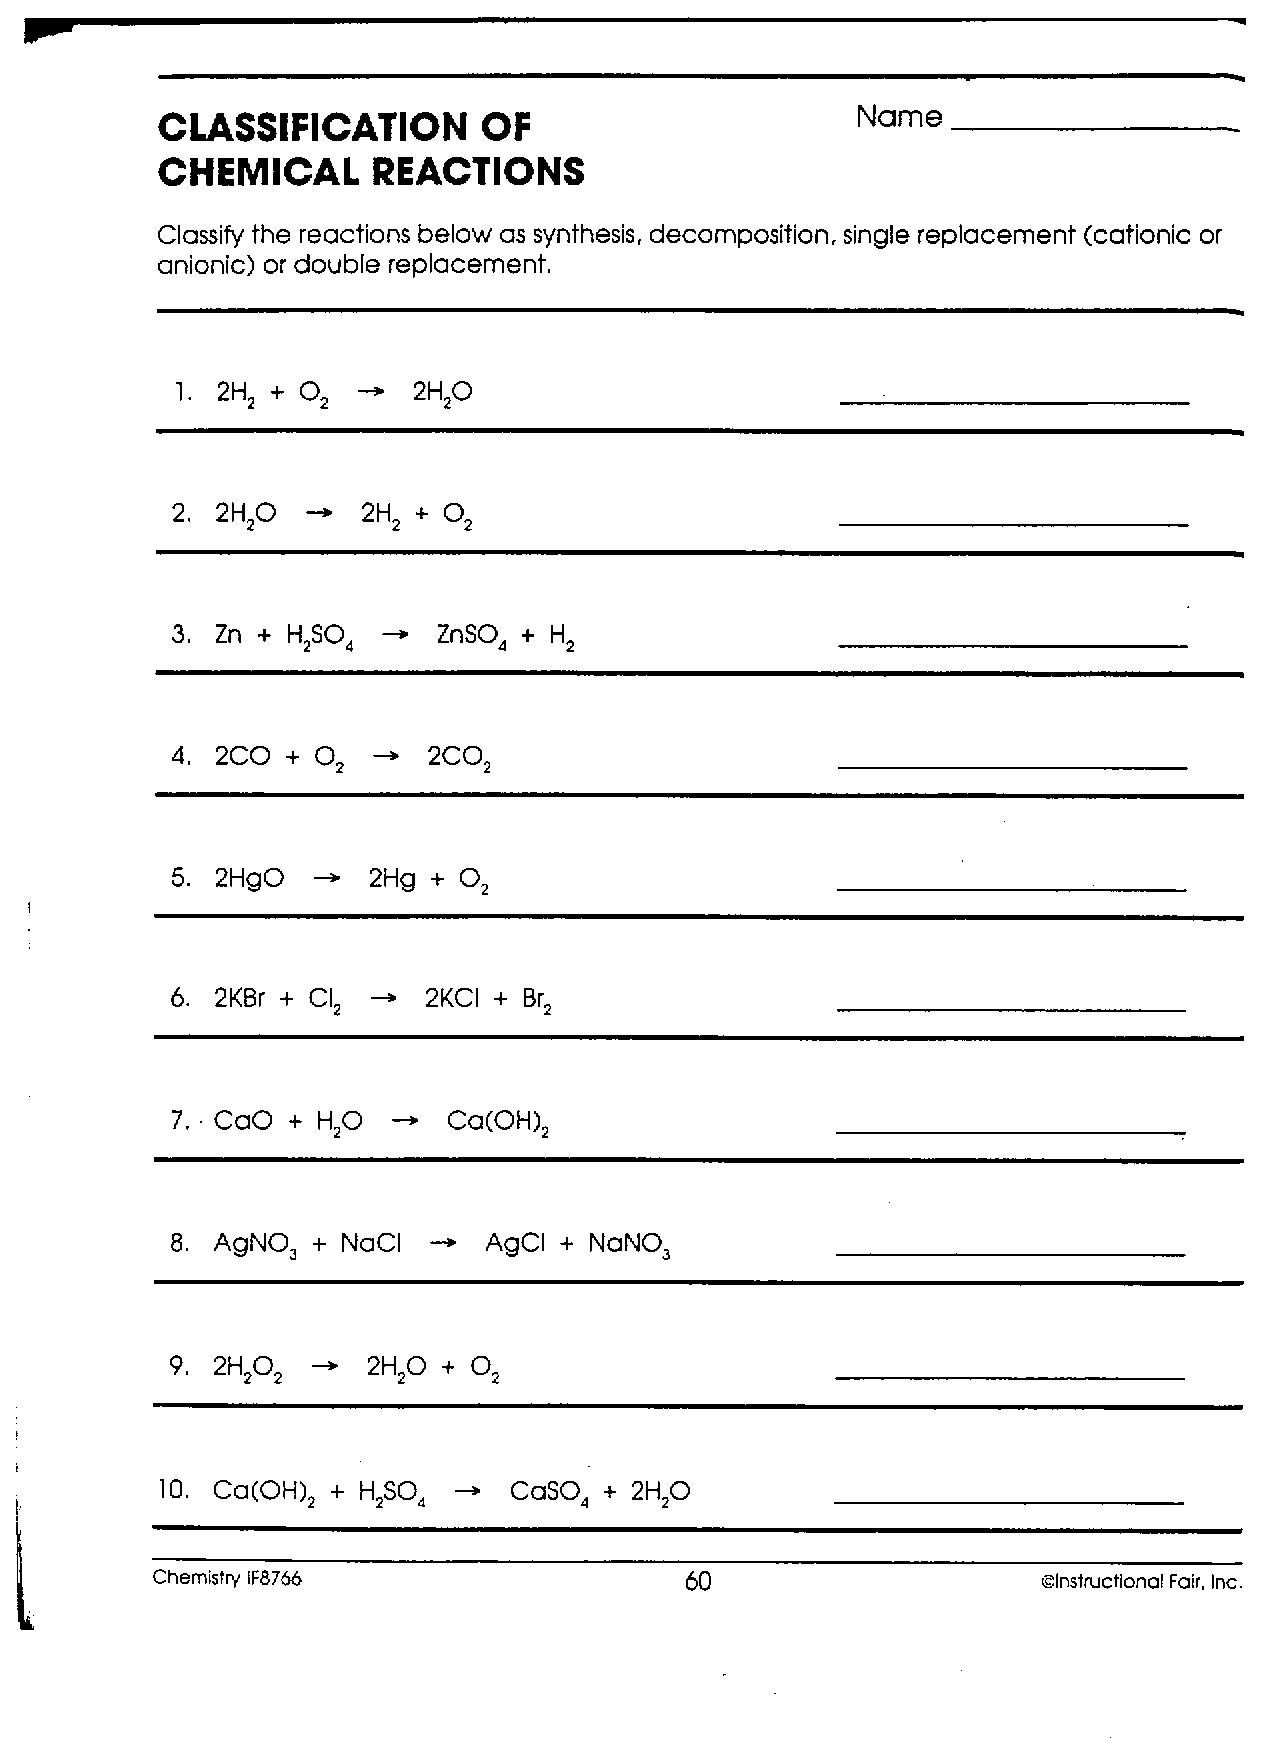 15 Best Images Of Chemical Reactions Worksheet With